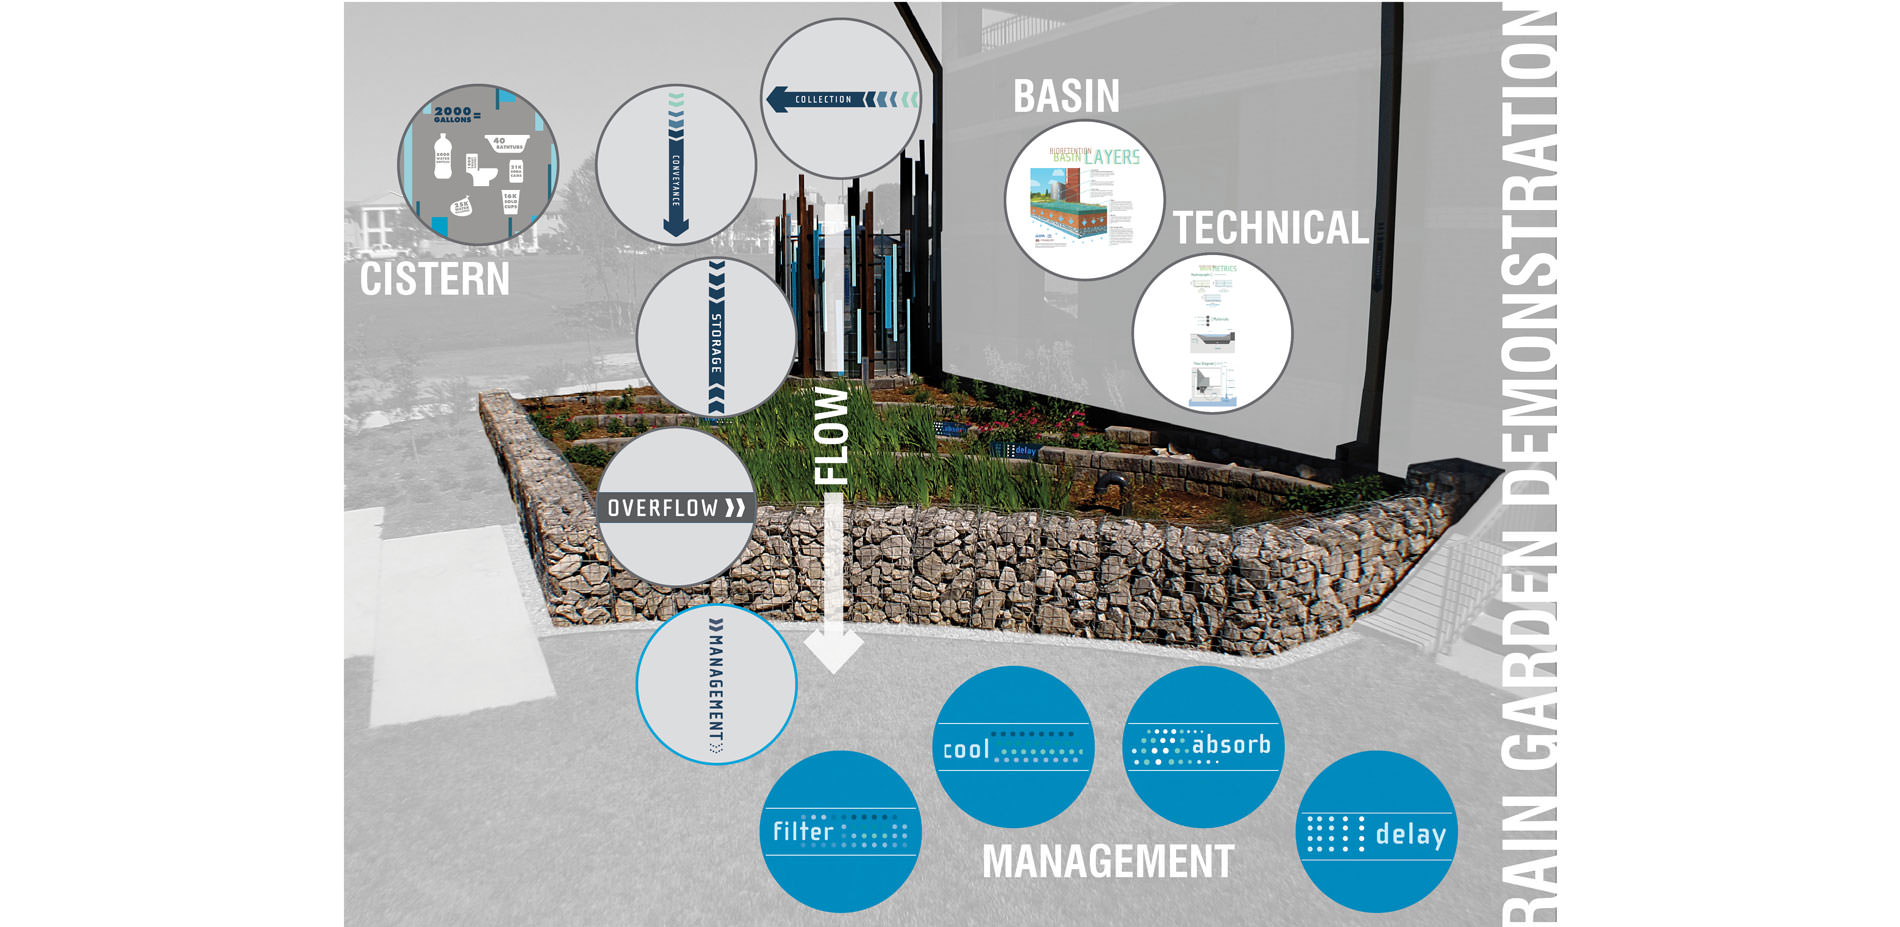 Rain Garden Demonstration | 2017 ASLA Student Awards on rain garden design for homeowners, rain garden design ideas, rain garden design software, native garden design diagrams, rain garden design templates, rain garden design calculations, rain garden planting design for maryland, landscaping diagrams, rain barrel diagram, sustainable architecture design diagrams, rain garden design sketch, rain architecture diagrams, rain water retention plans, catch rain diagrams, rain shadow, stormwater management diagrams,